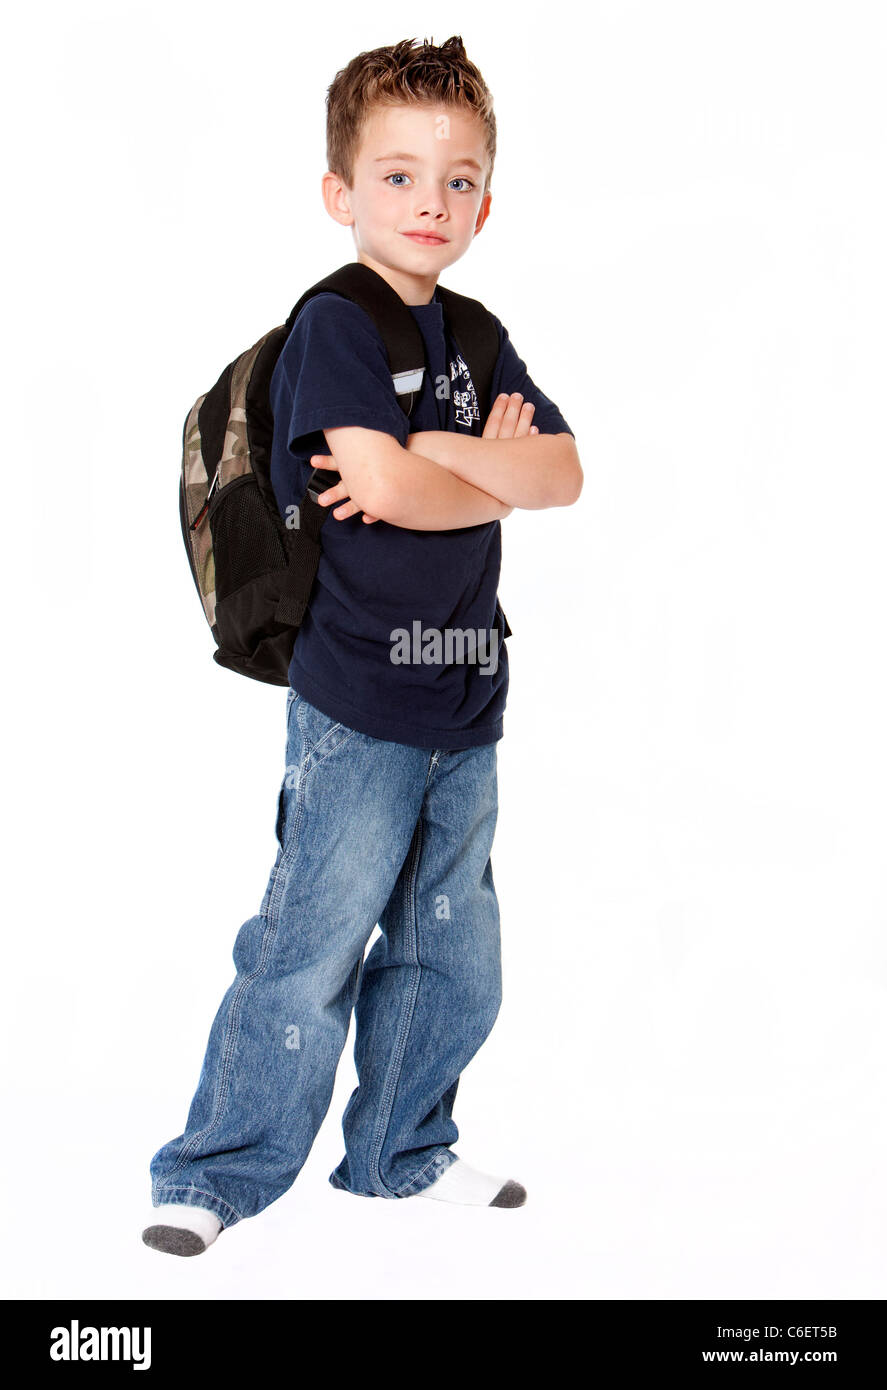 dbc676ee248b Young boy with backpack isolated on white background Stock Photo ...